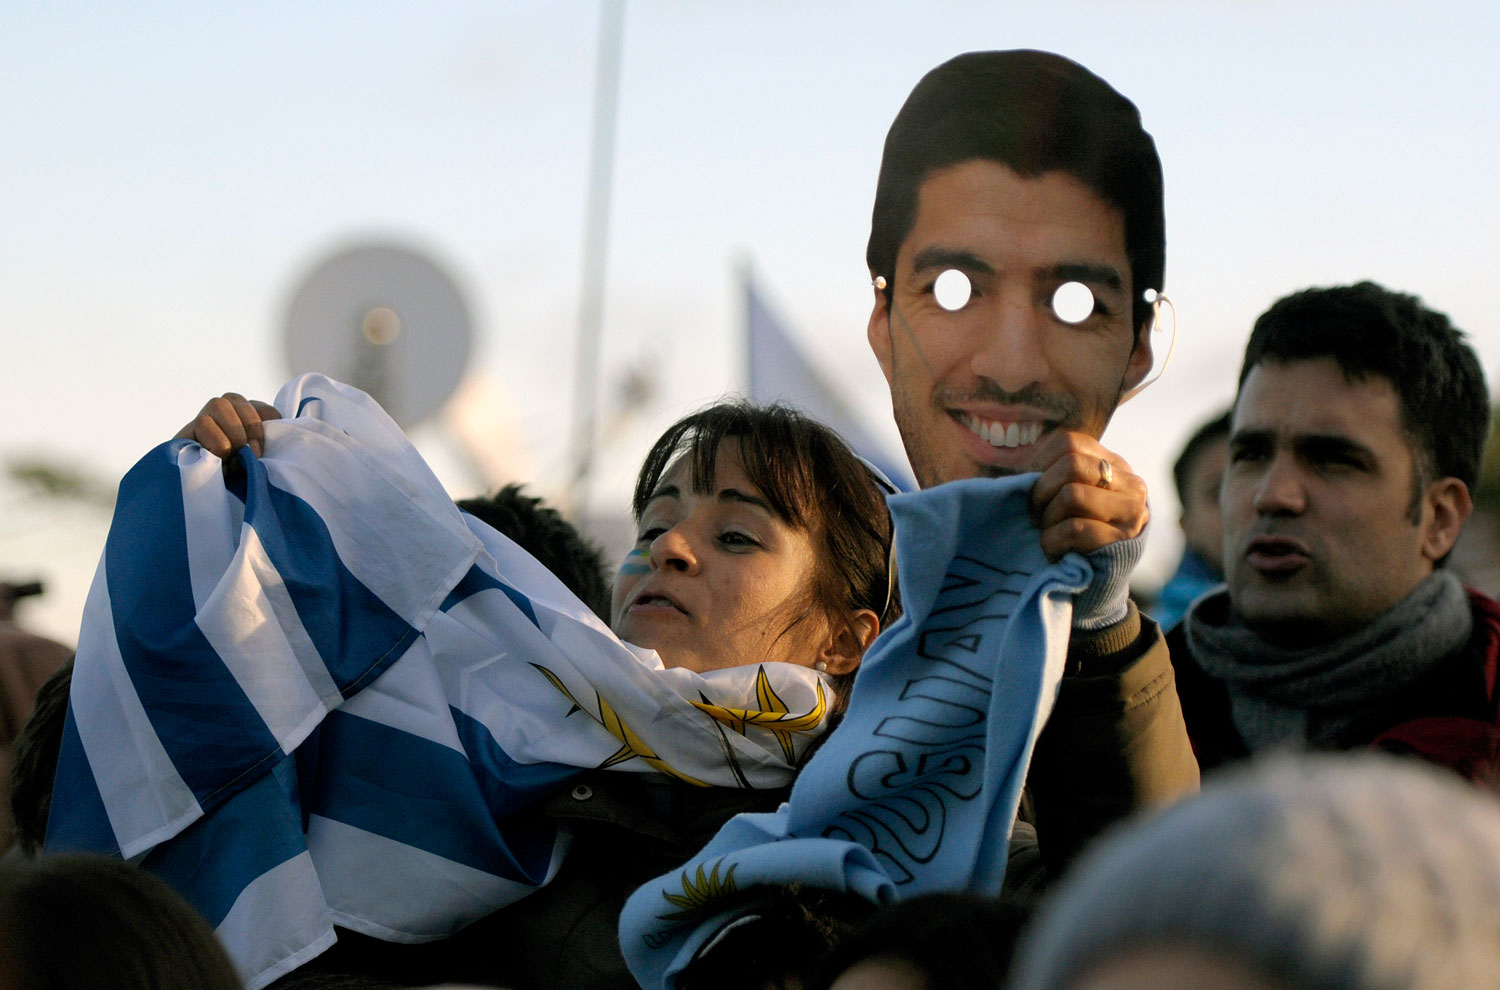 A Uruguay soccer fan holds an image of player Luis Suarez outside Suarez's home where people gather to watch the World Cup via a live telecast of the match between Uruguay and Colombia on the outskirts of Montevideo, Uruguay on June 28, 2014.